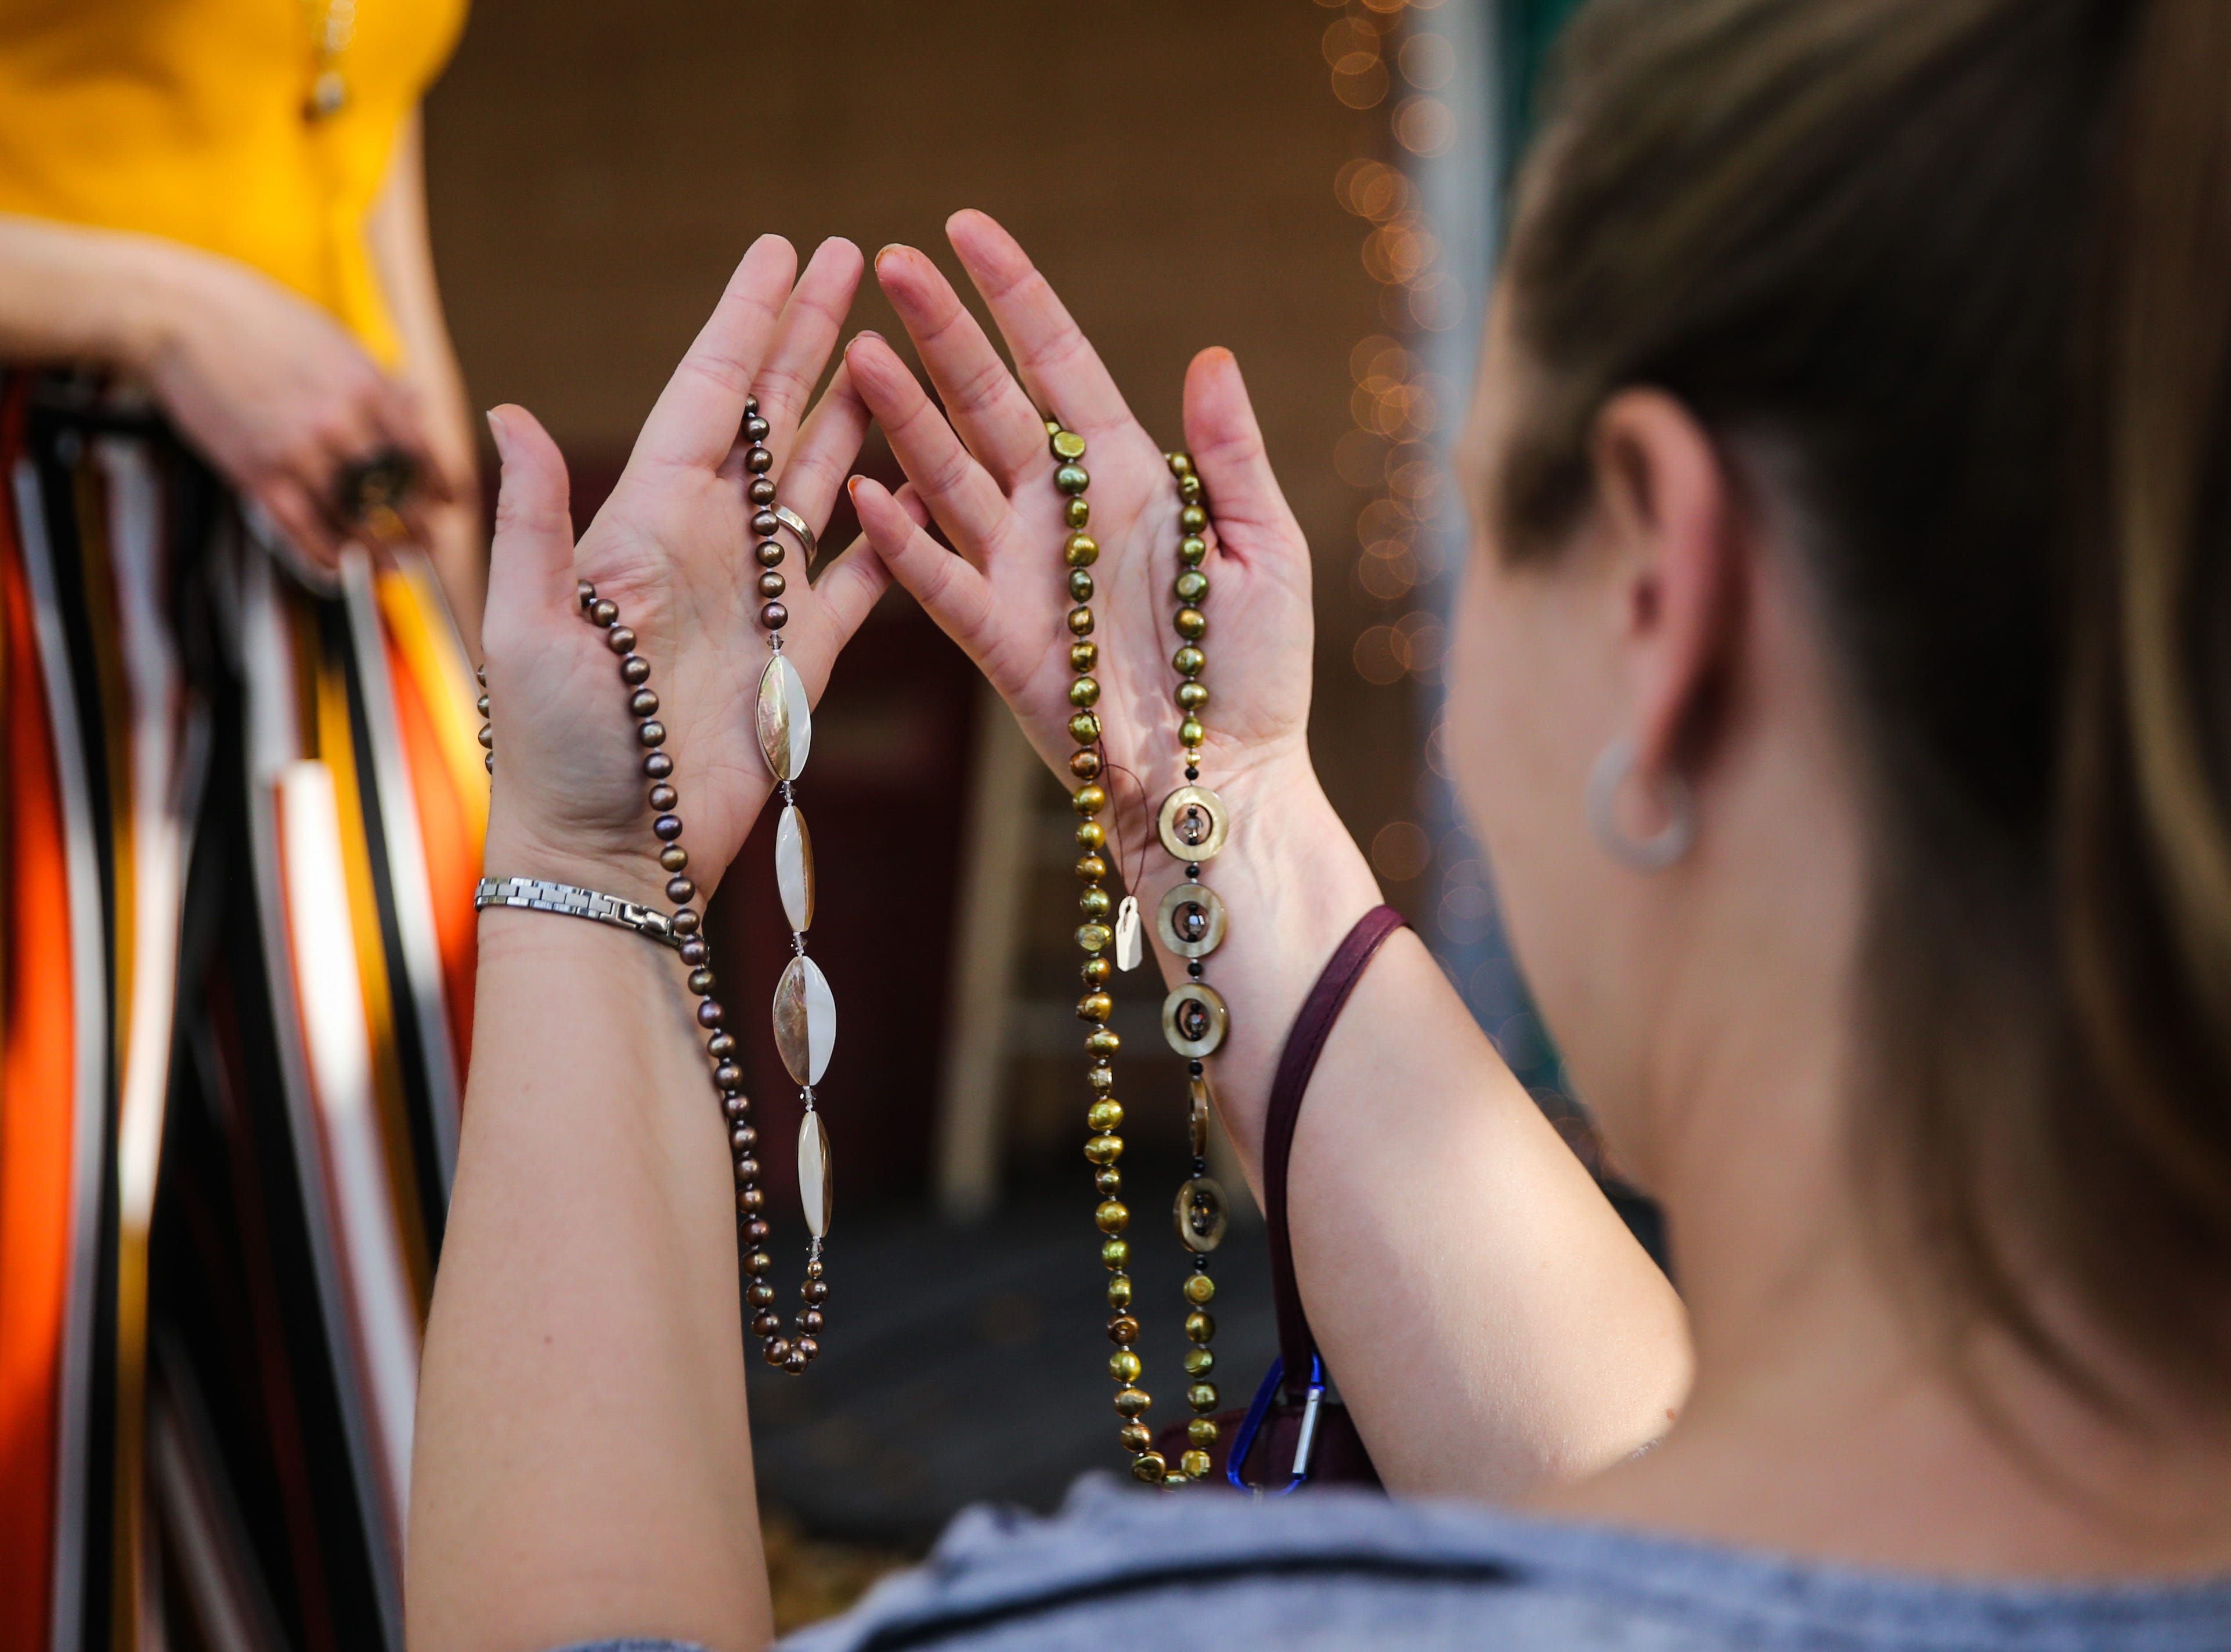 Lindsay Harrison compares necklaces during the Thanksgiving Open House Friday, Nov. 23, 2018, at the Chicken Farm Art Center.